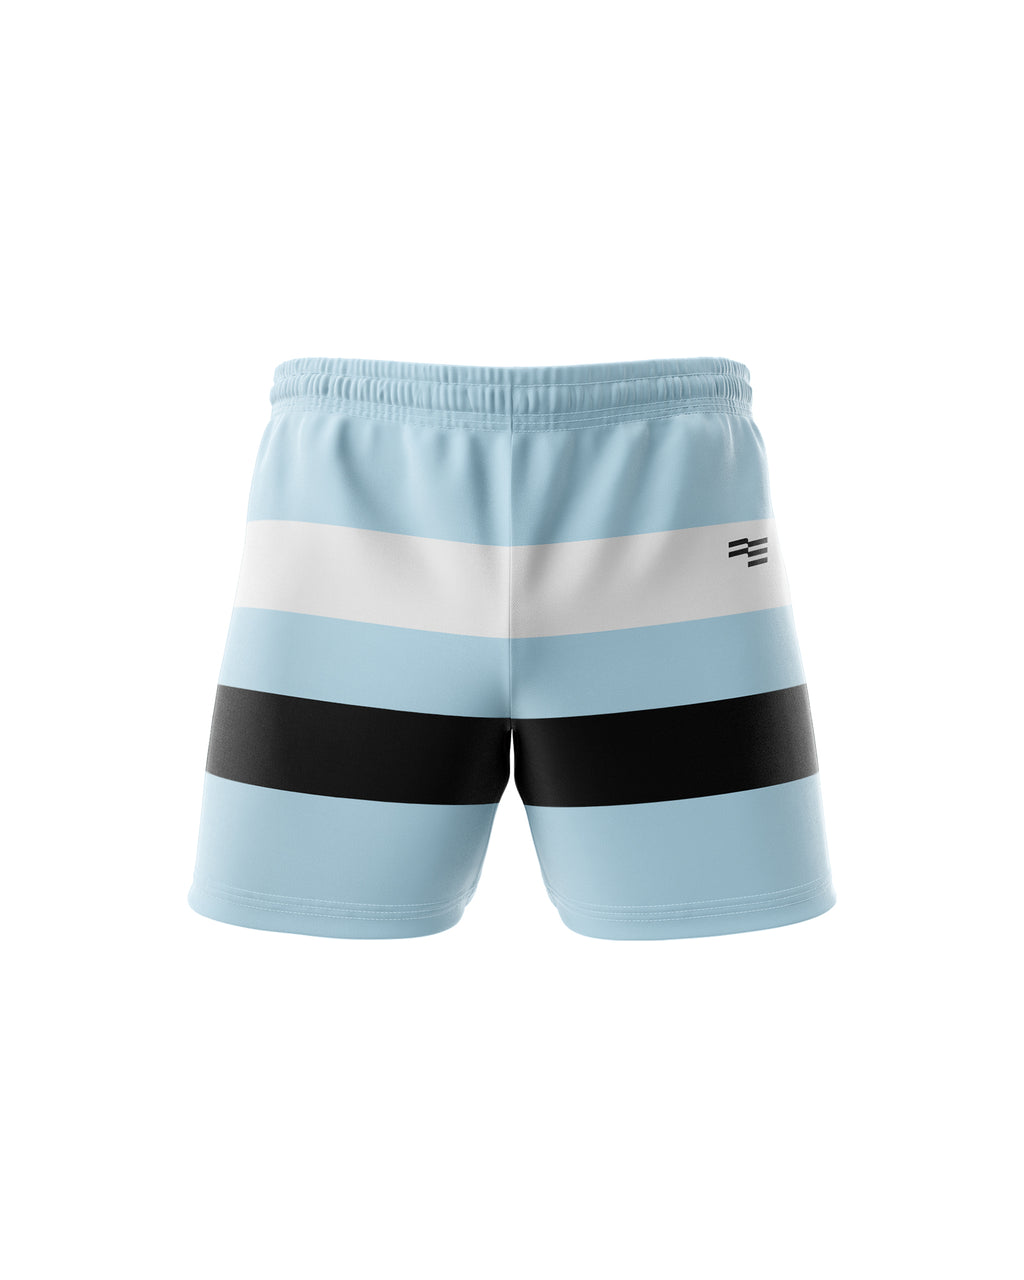 Grenadiers Rugby Shorts - Mens